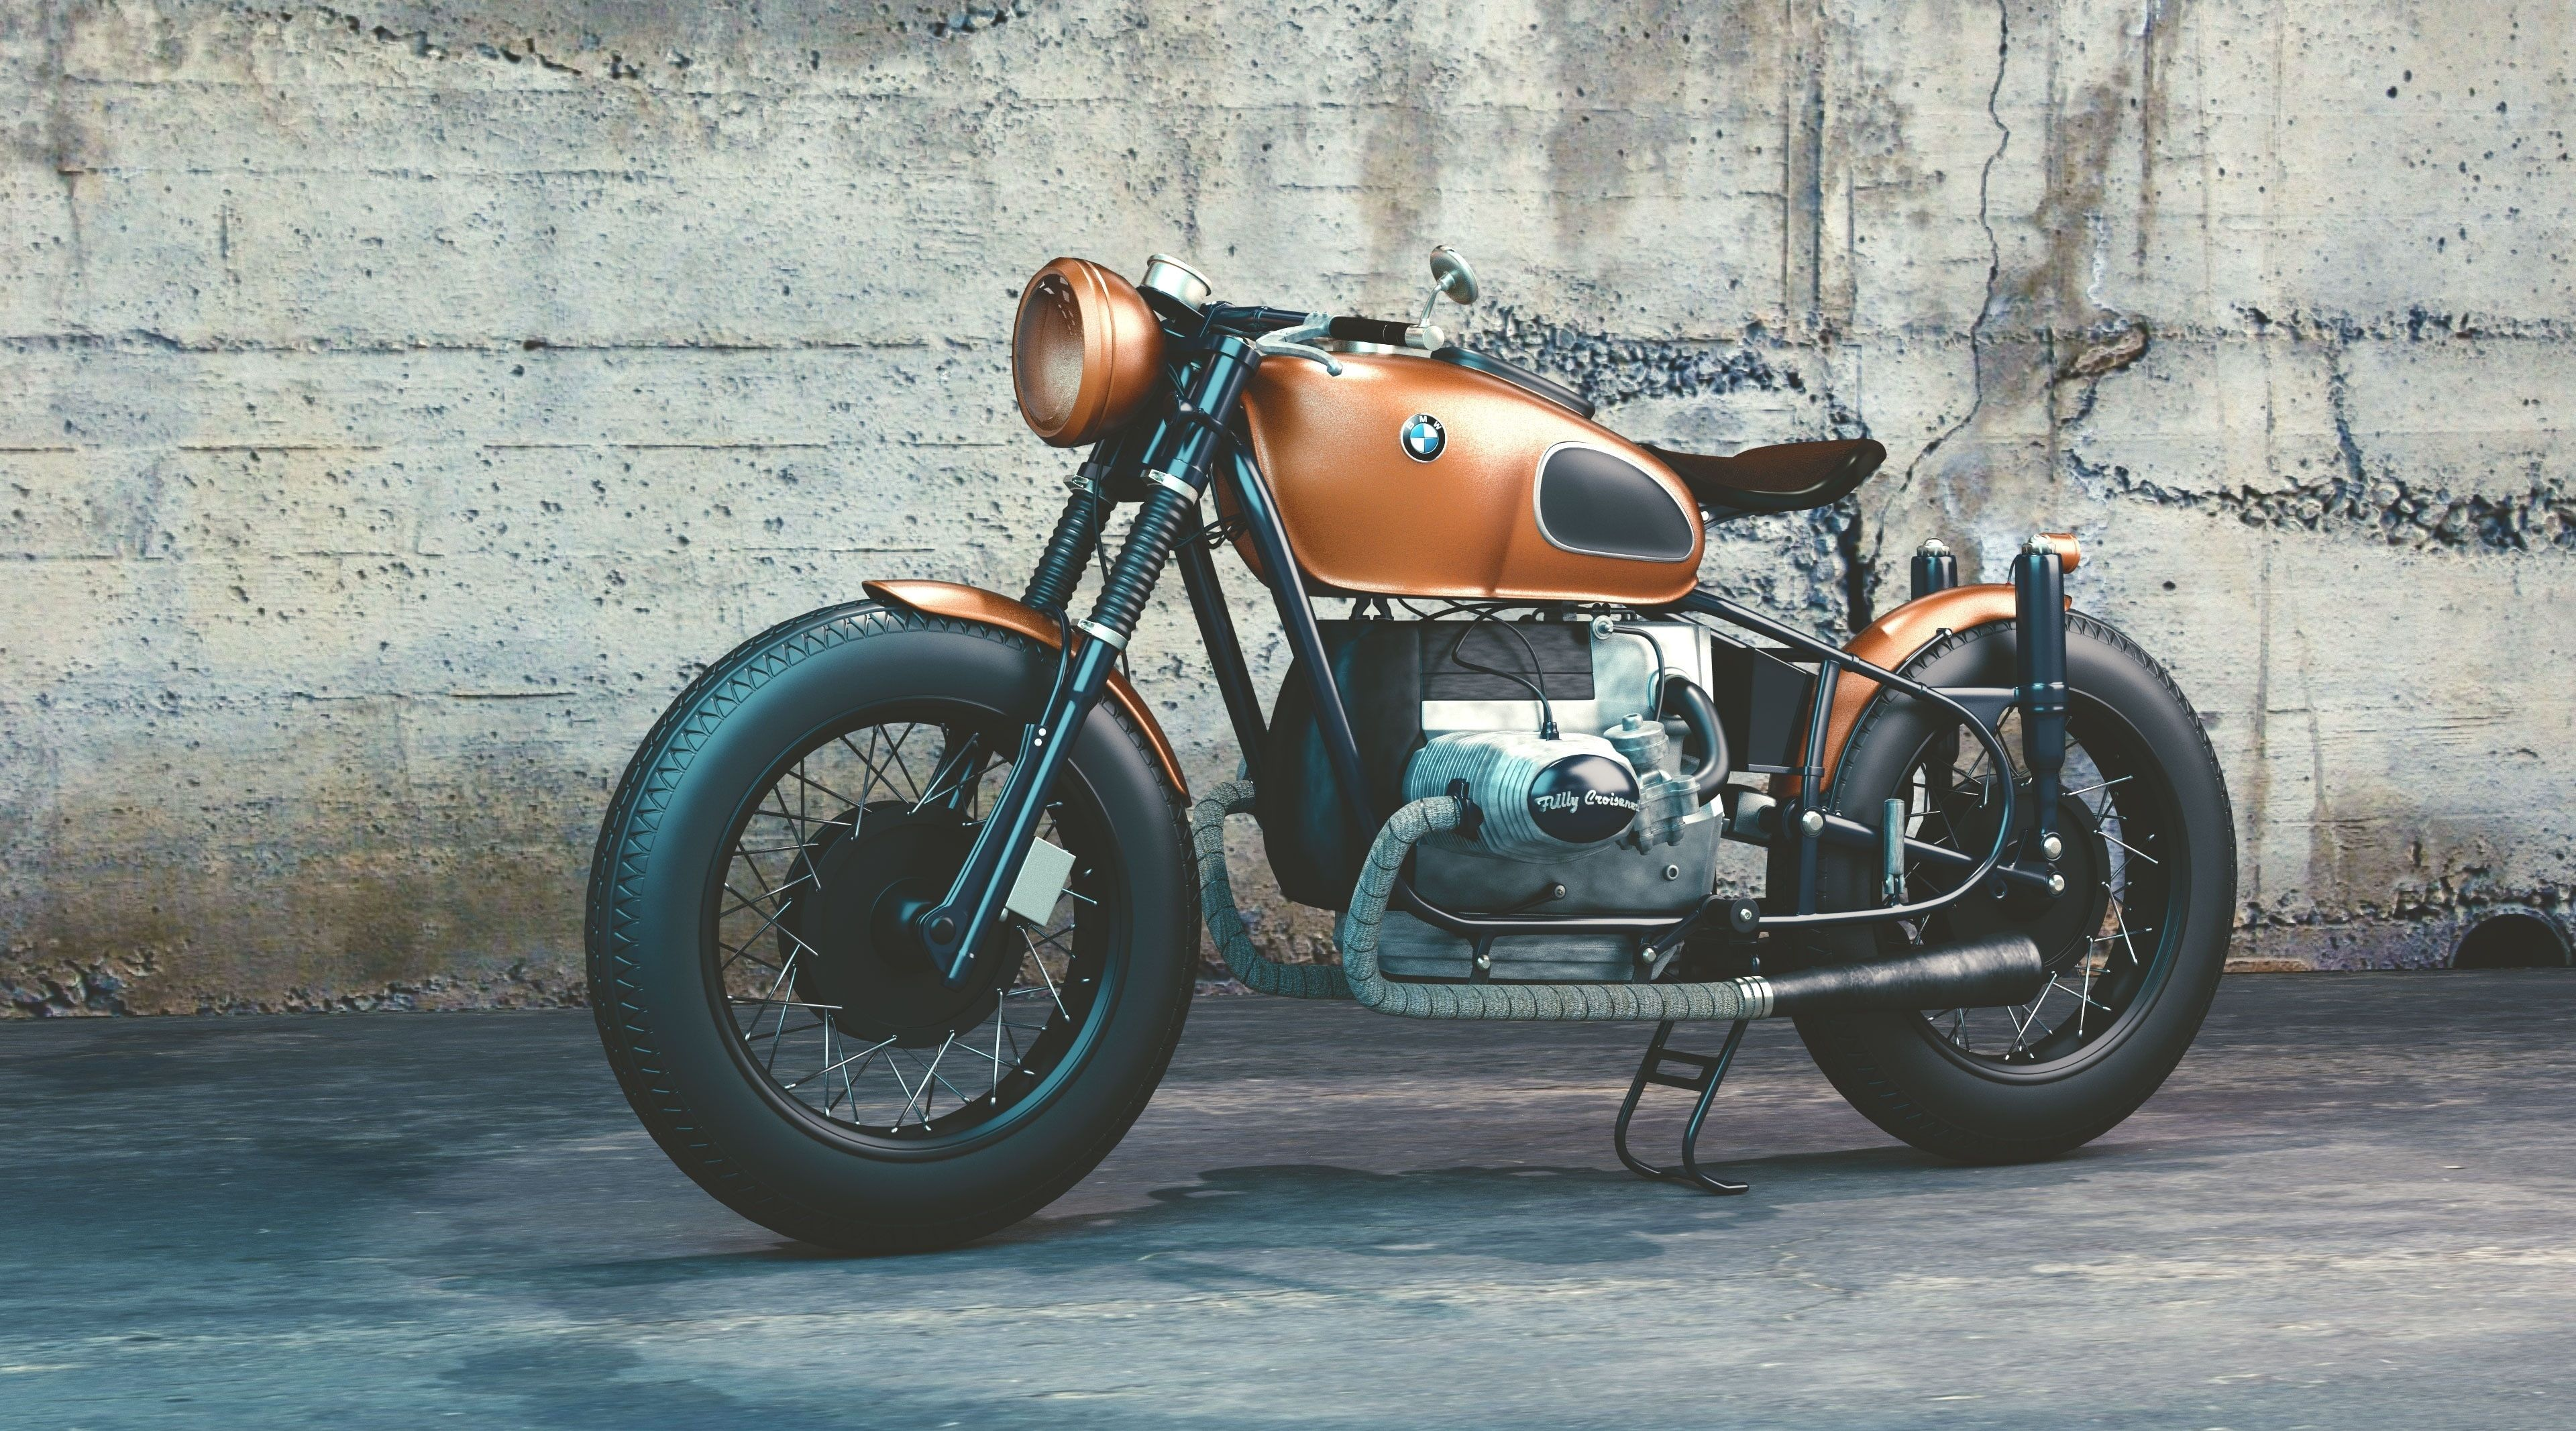 Bmw Motorcycle Brown Cafe Racer Motorcycle Artistic 3d Travel